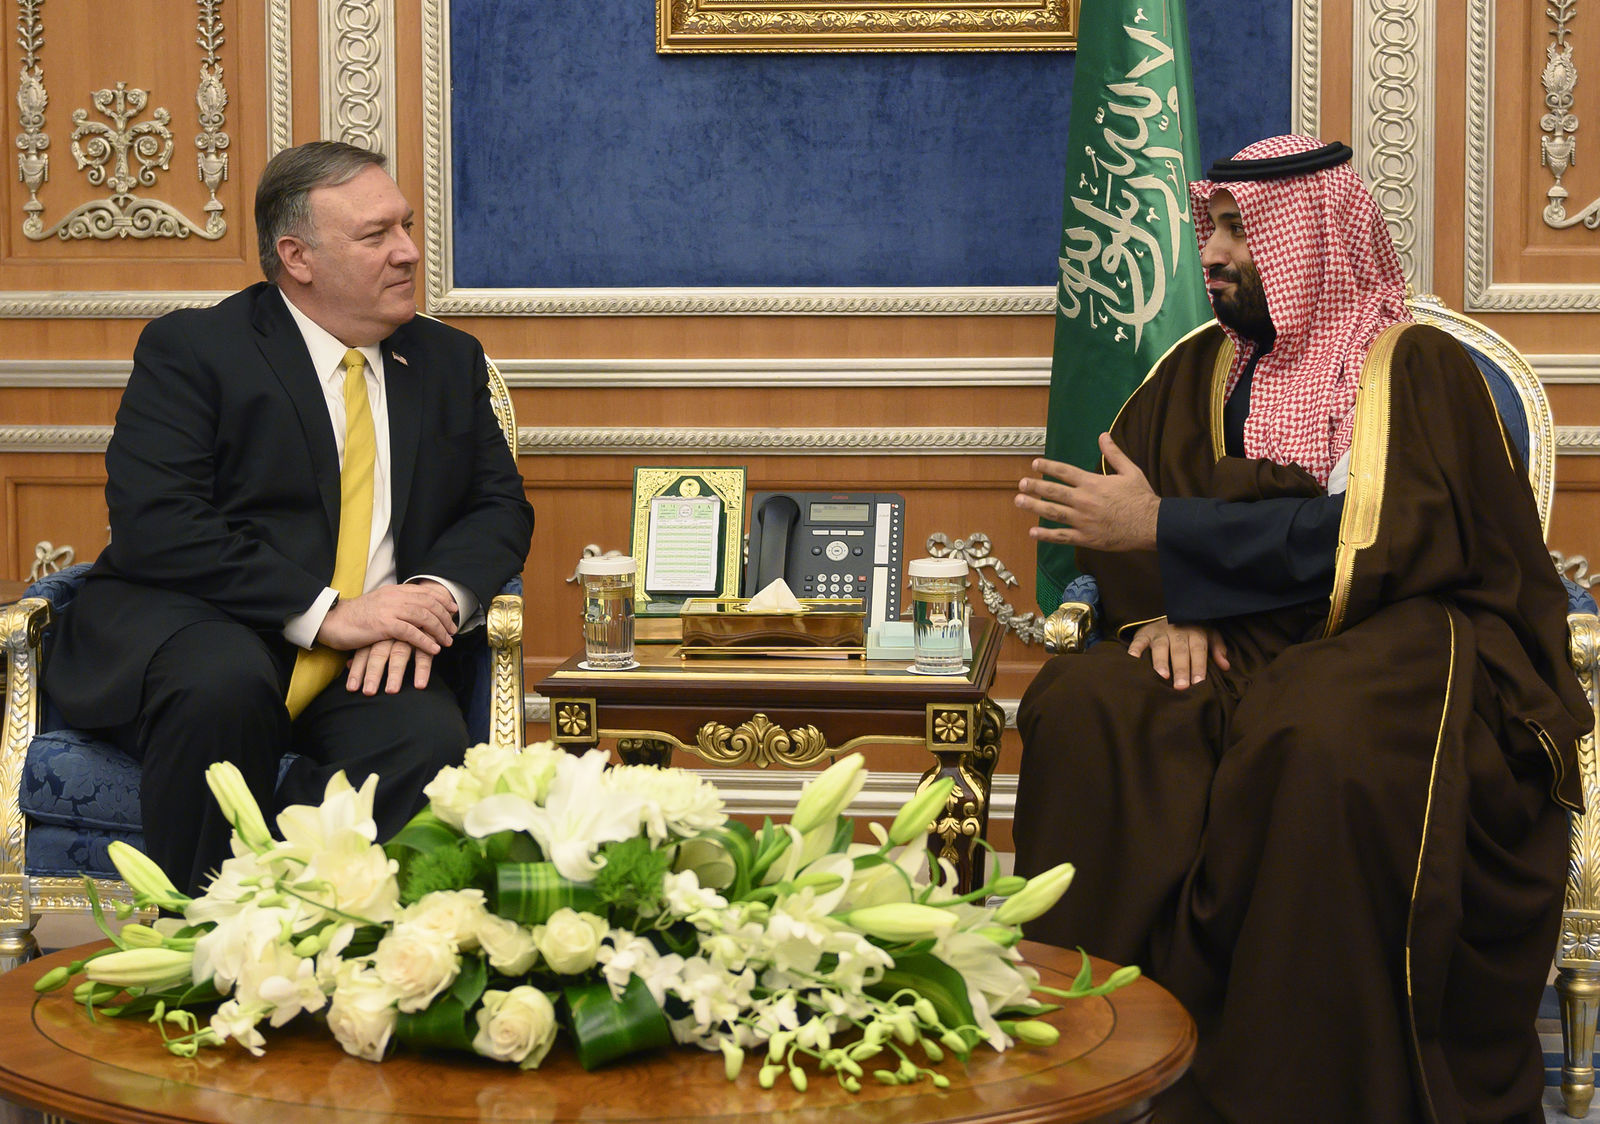 Saudi Crown Prince Mohammed bin Salman, right meets with U.S. Secretary of State Mike Pompeo at the Royal Court, in Riyadh, Saudi Arabia, Monday, January 14, 2019. Pompeo met with King Salman and the crown prince on the latest stop of his Middle East tour that has so far been dominated by questions and concerns about the withdrawal of U.S. troops from Syria. (Andrew Cabellero-Reynolds/Pool via AP)